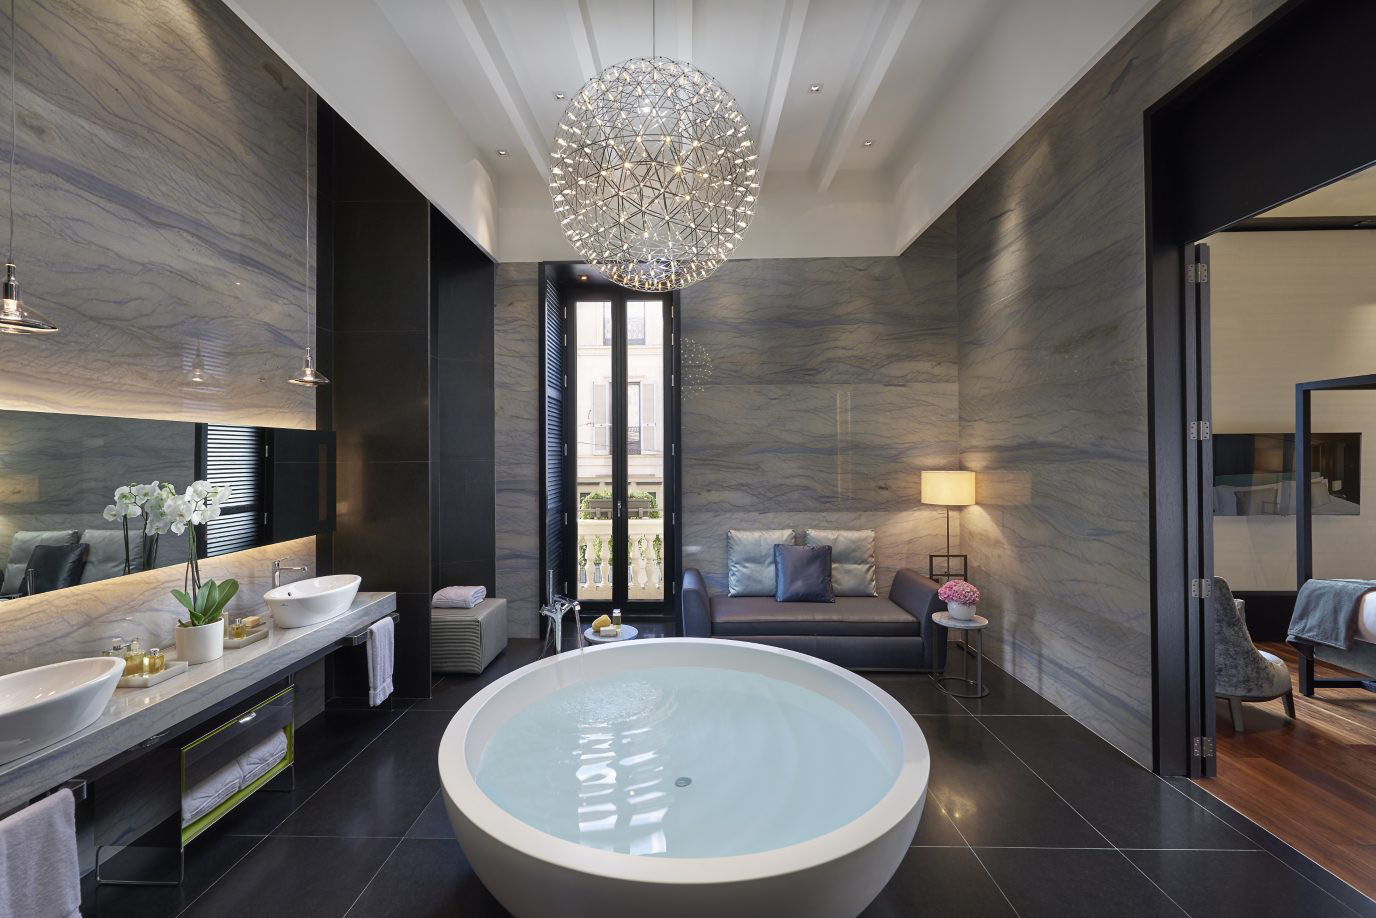 Mandarin Oriental Milan Hotel Timeless Luxury With Chic